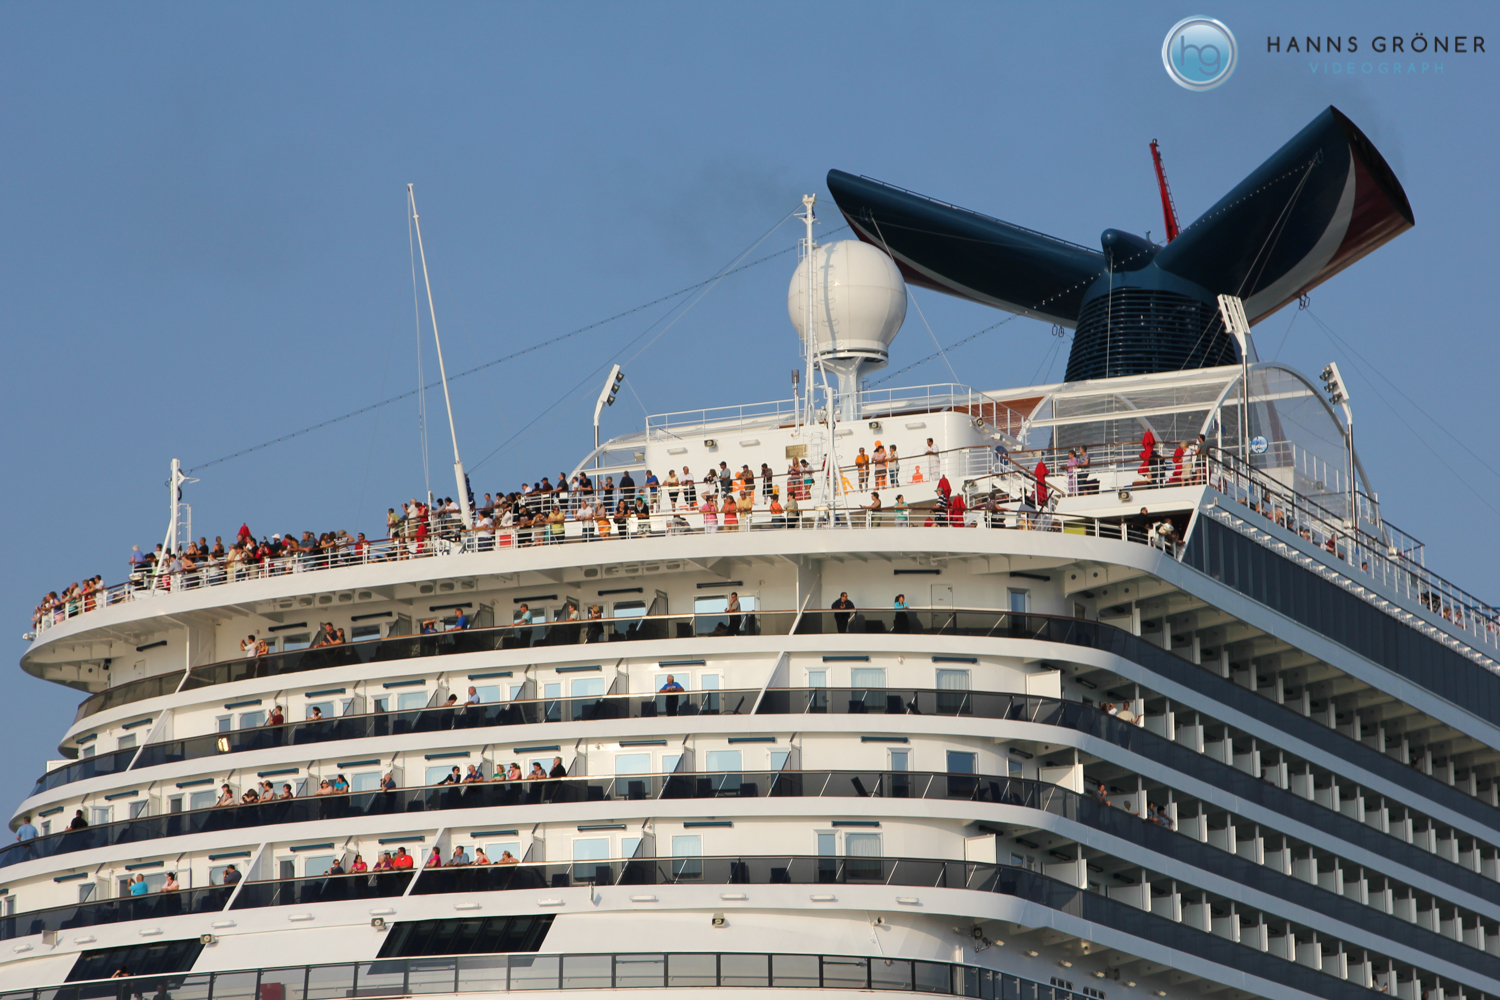 Schiffe | Carnival Breeze in Venedig